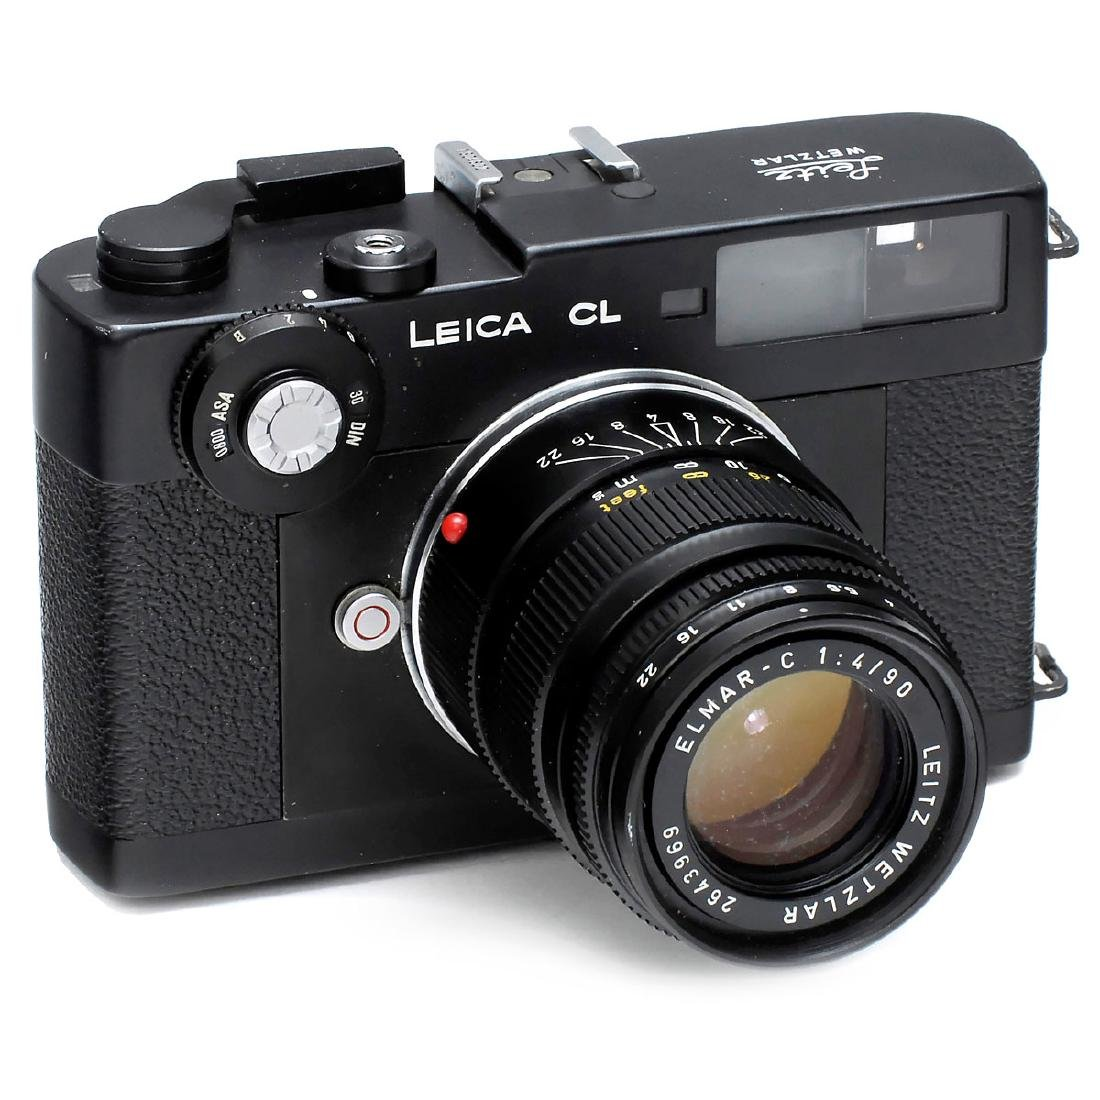 Leica CL with Elmar-C 4/90 mm, 1973